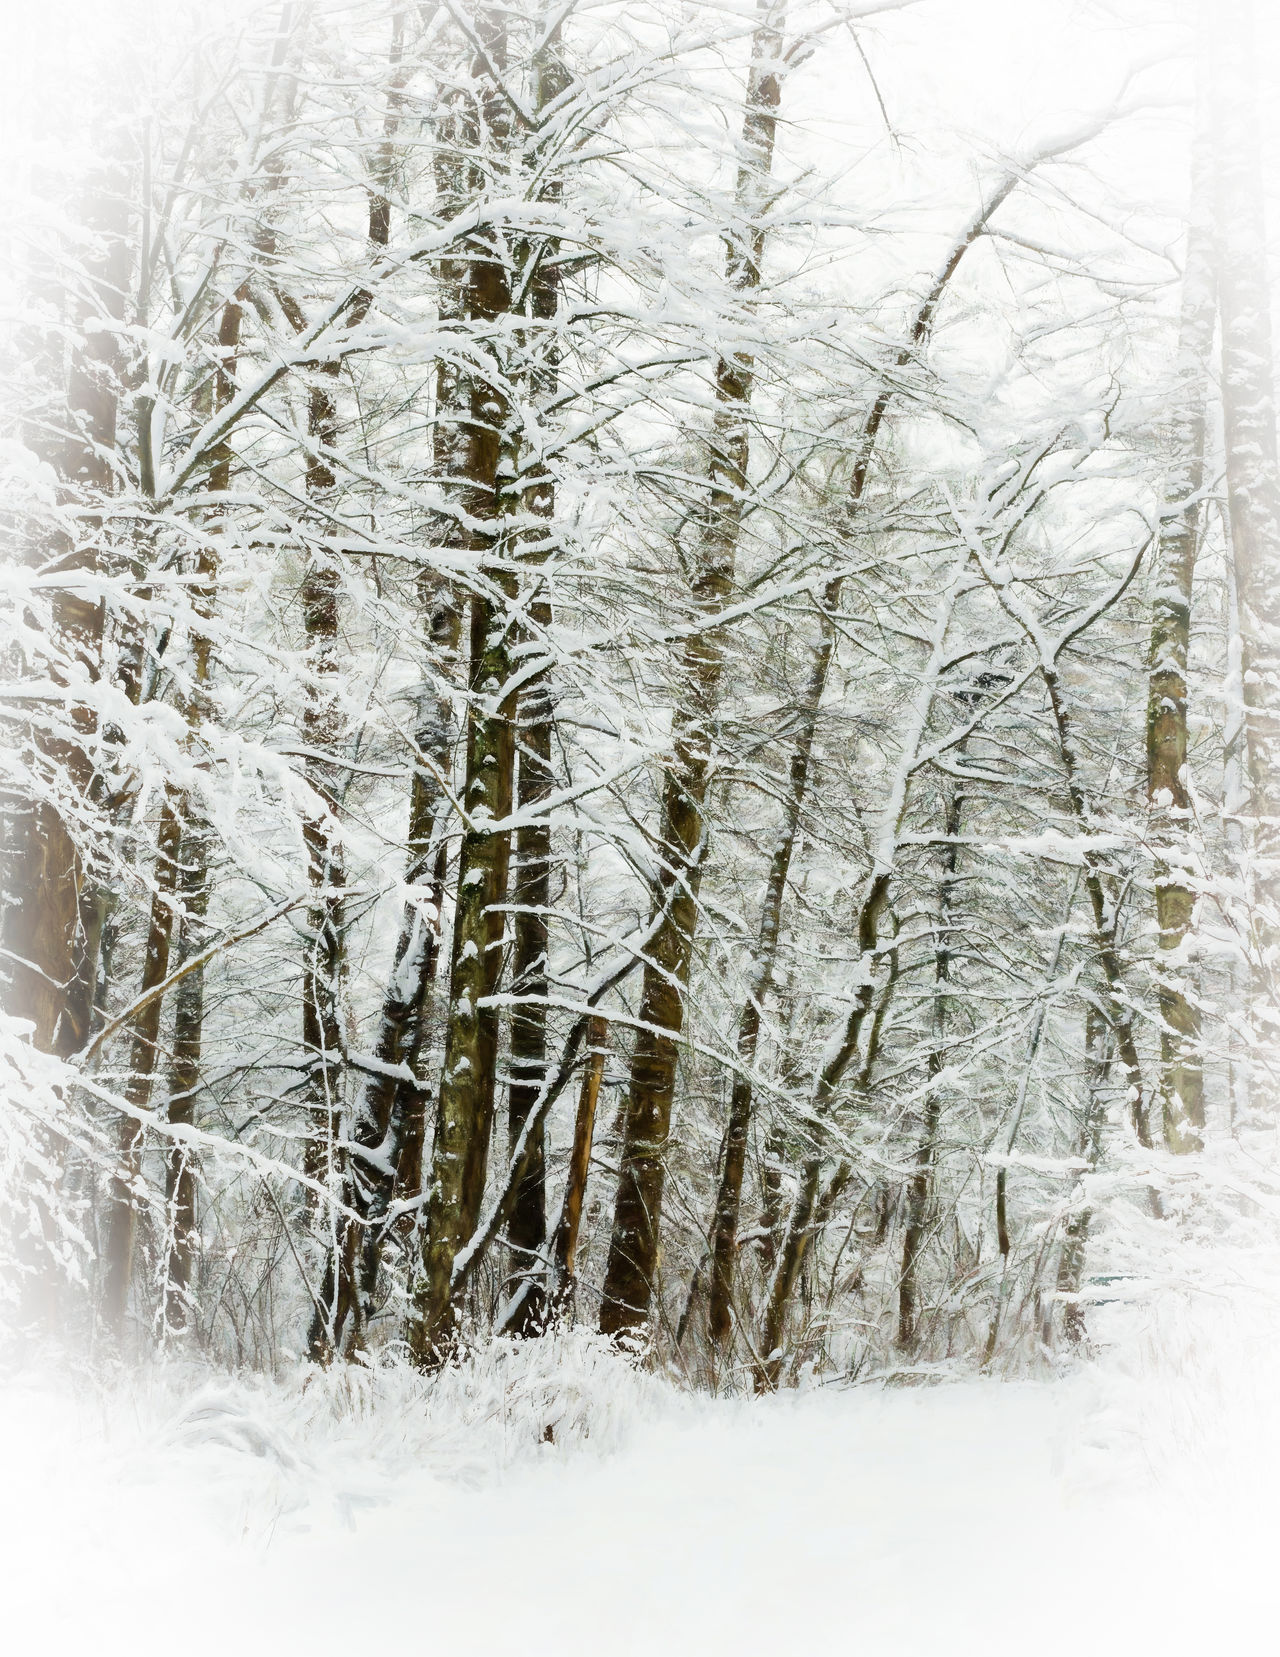 Beauty In Nature Branch Close-up Cold Temperature Day Forest Frozen Nature No People Outdoors Scenics Snow Snowing Tree Weather White Color Winter